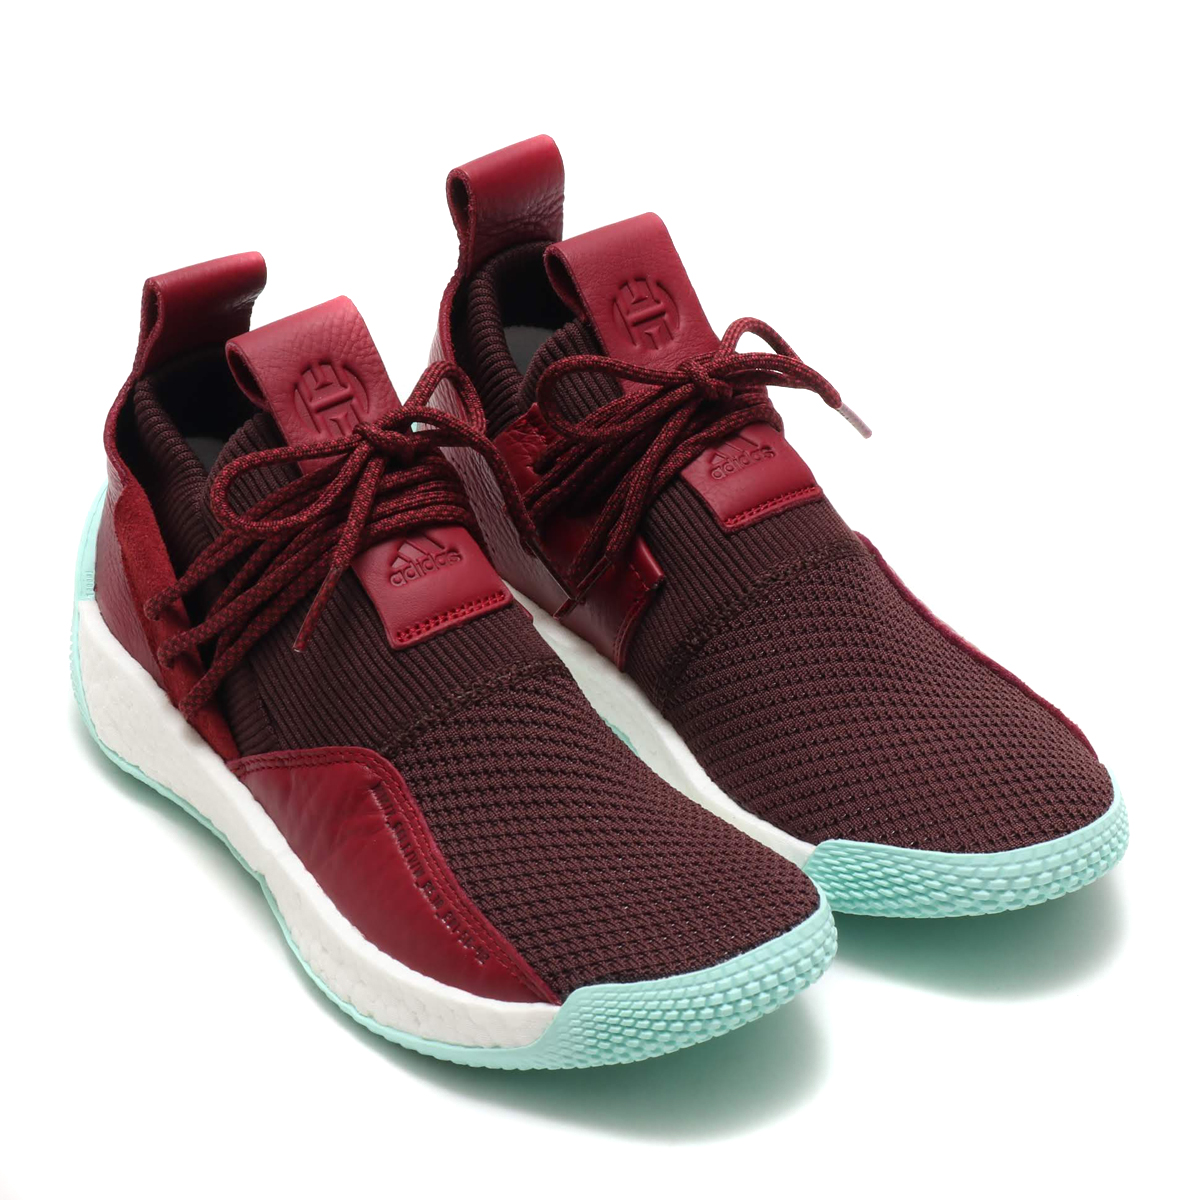 18756c1eef42 atmos pink  adidas Harden LS 2 LACE (Adidas Arthur Harden LS2 LACE ...